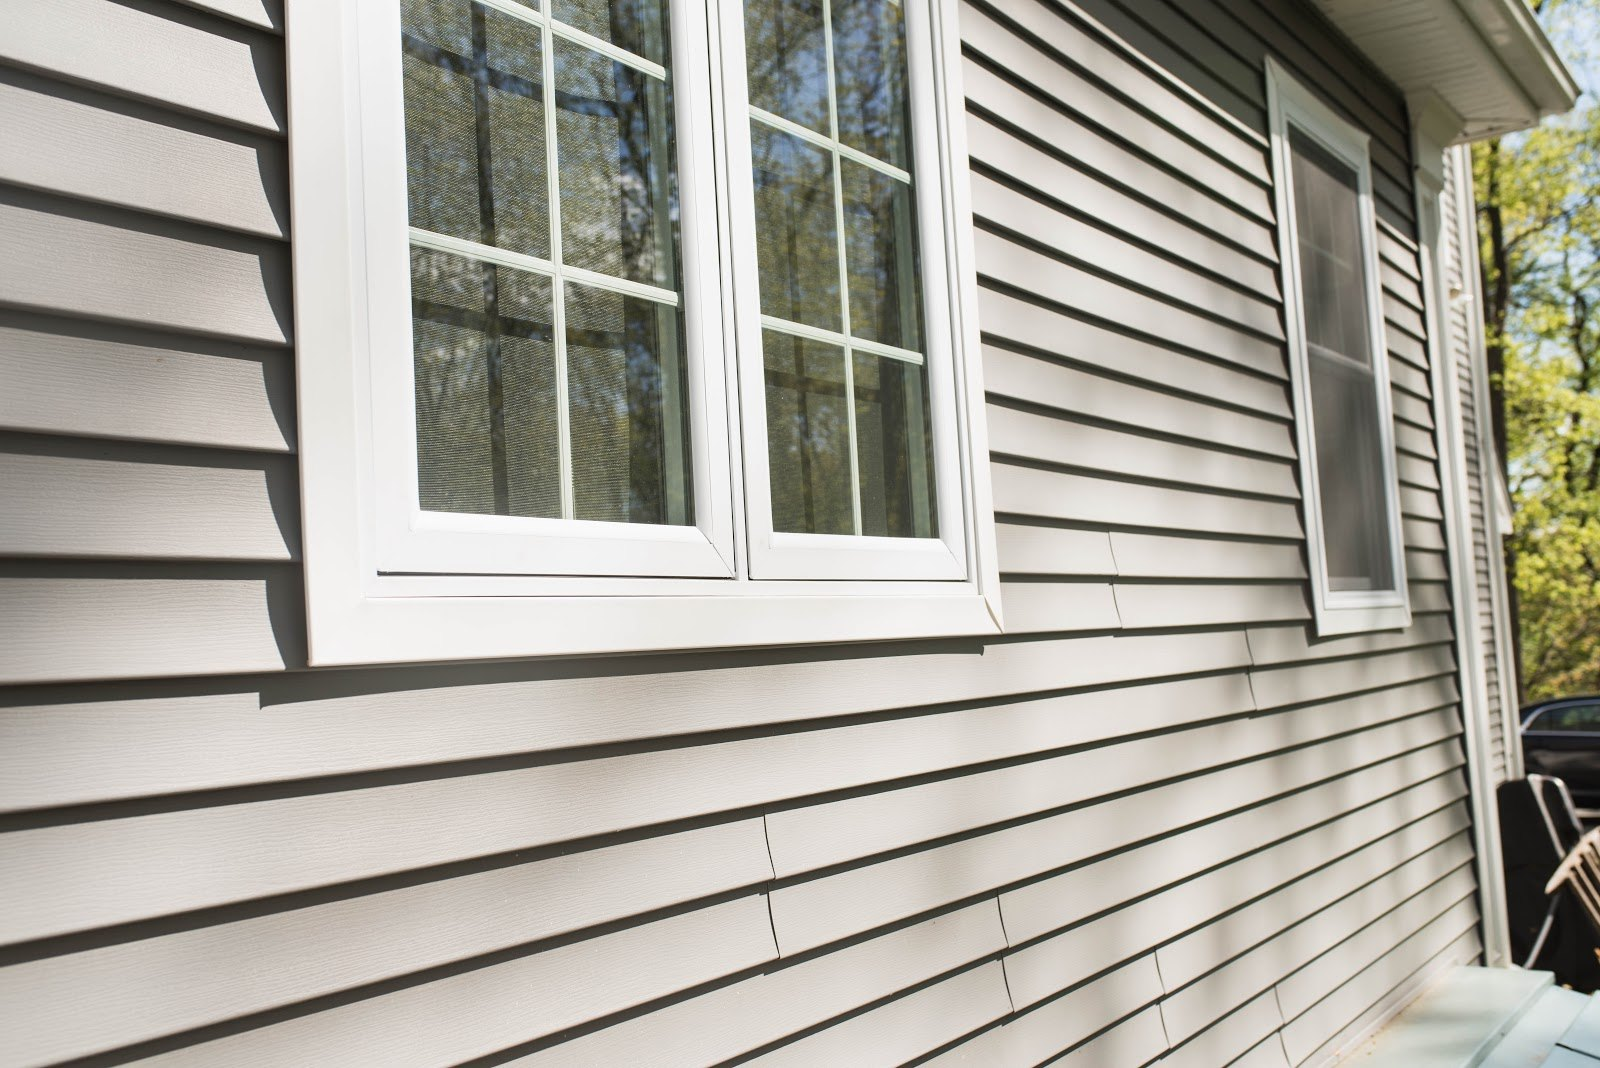 Does Siding Increase Home Value After Years Of Wear And Tear